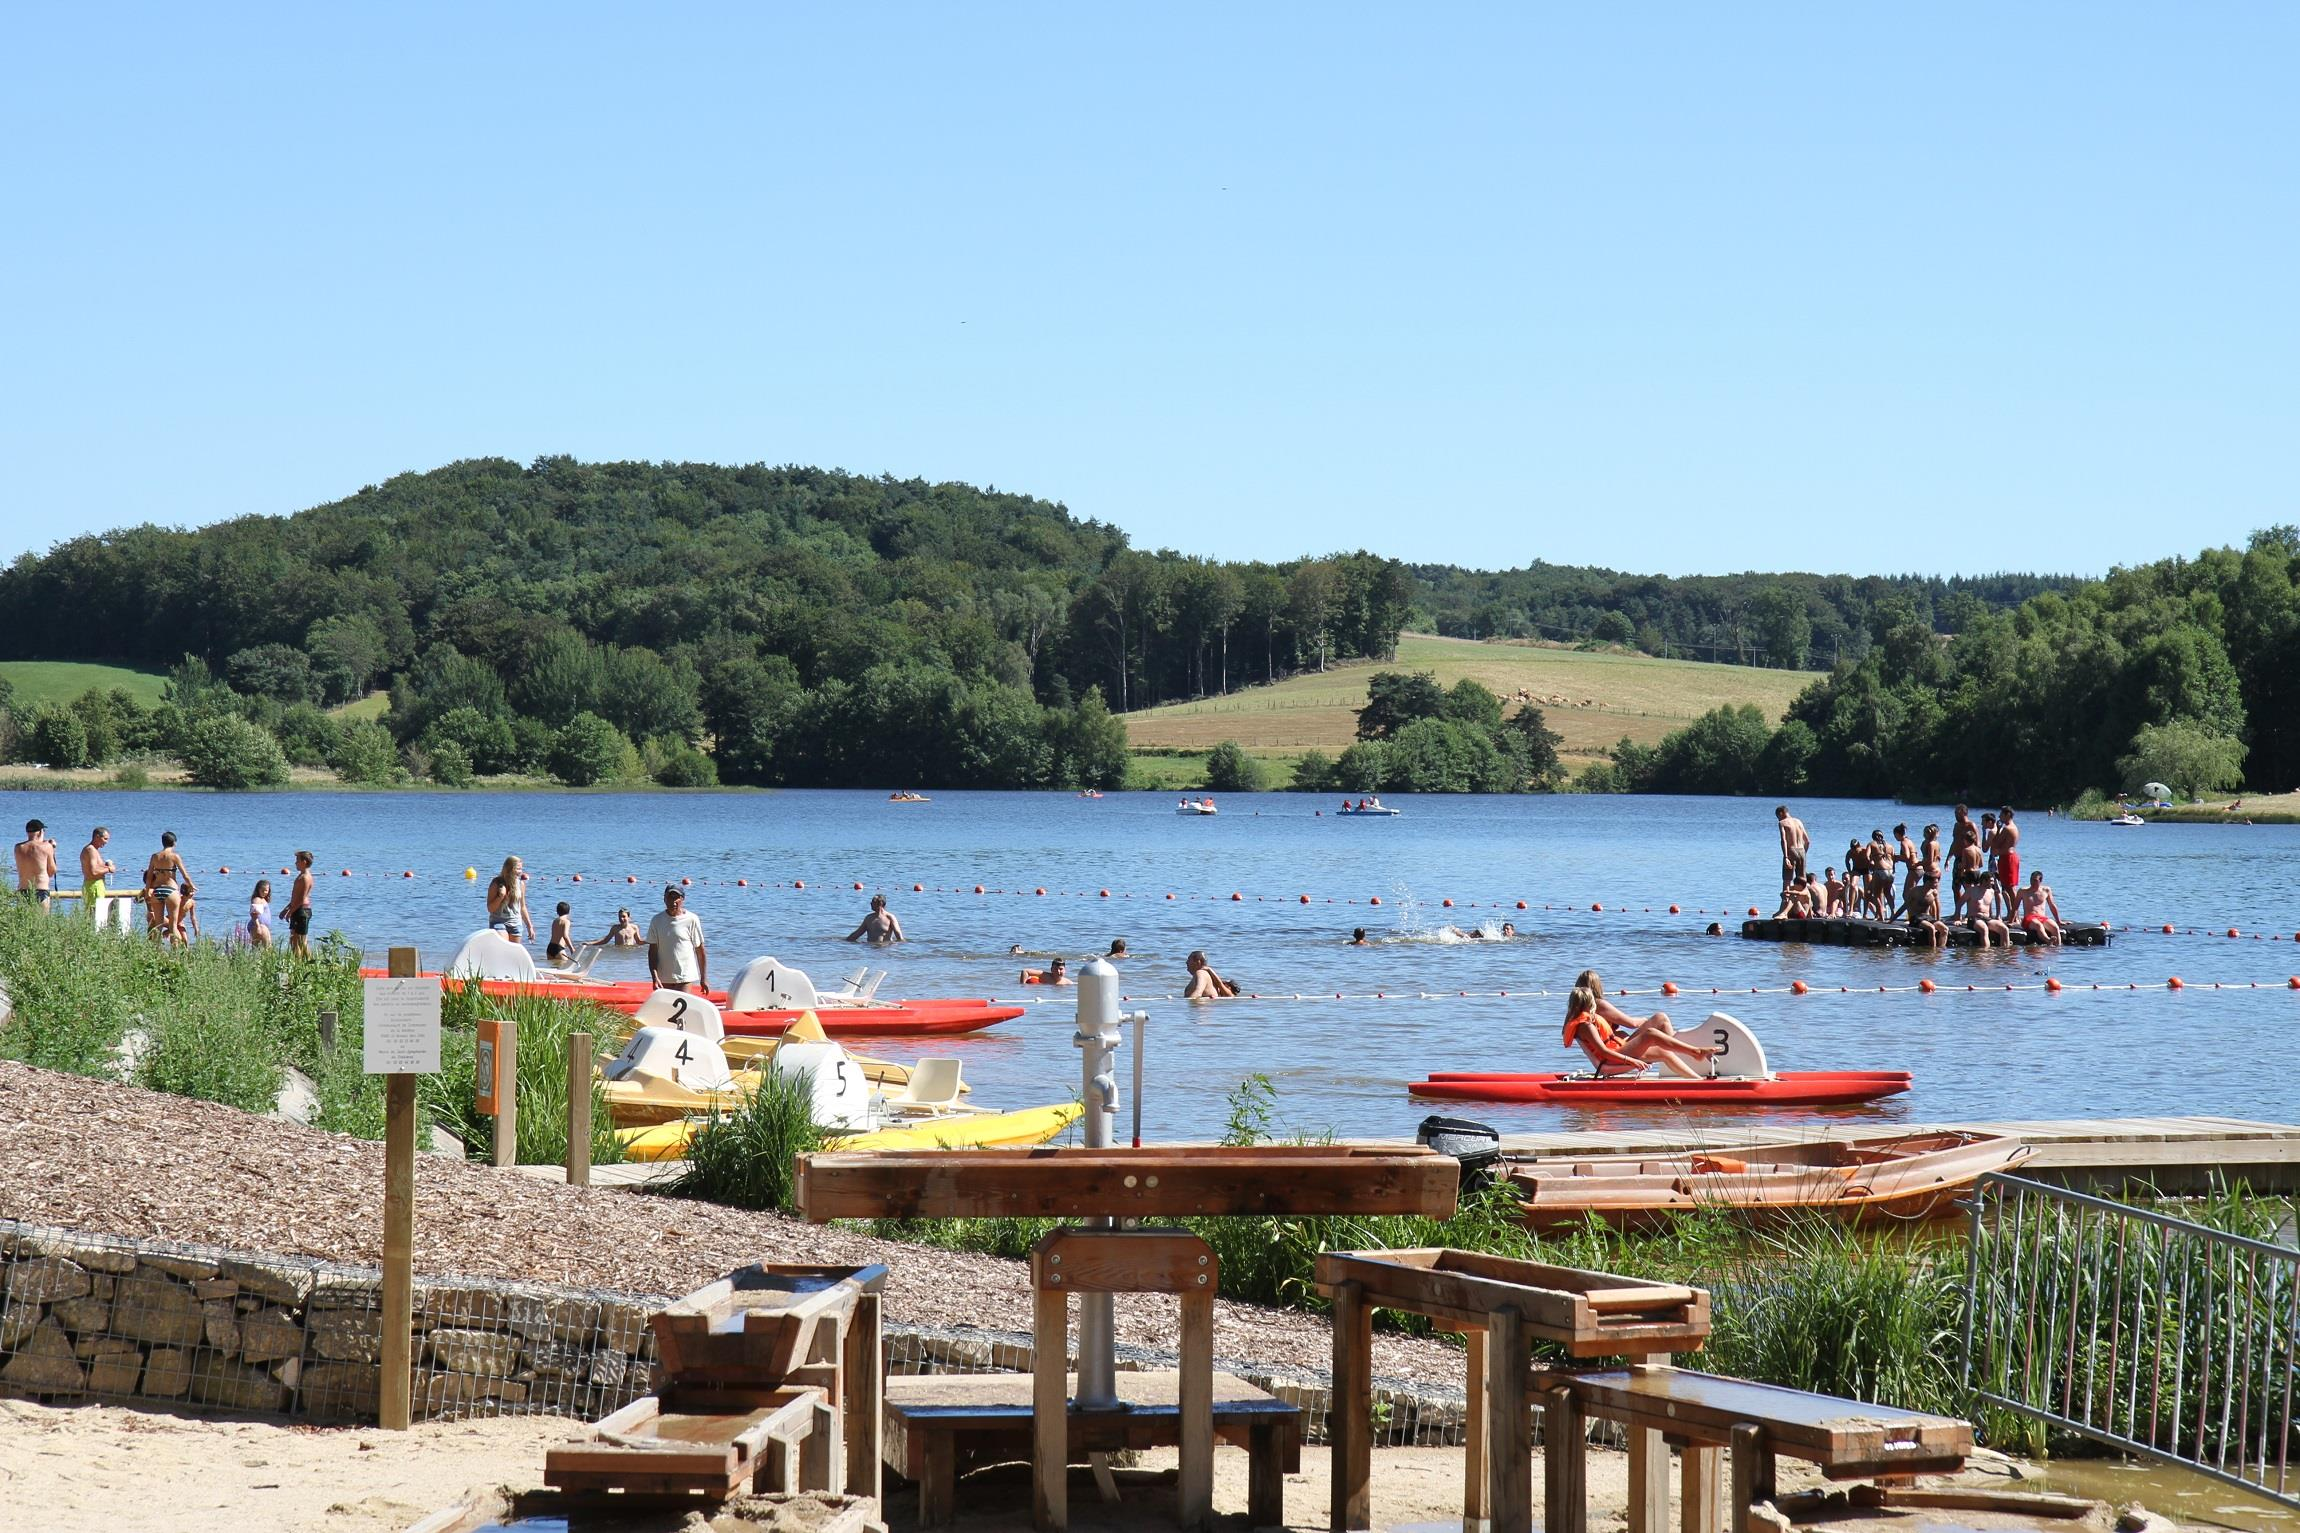 Establishment Camping de St Gervais - Saint Gervais Aveyron